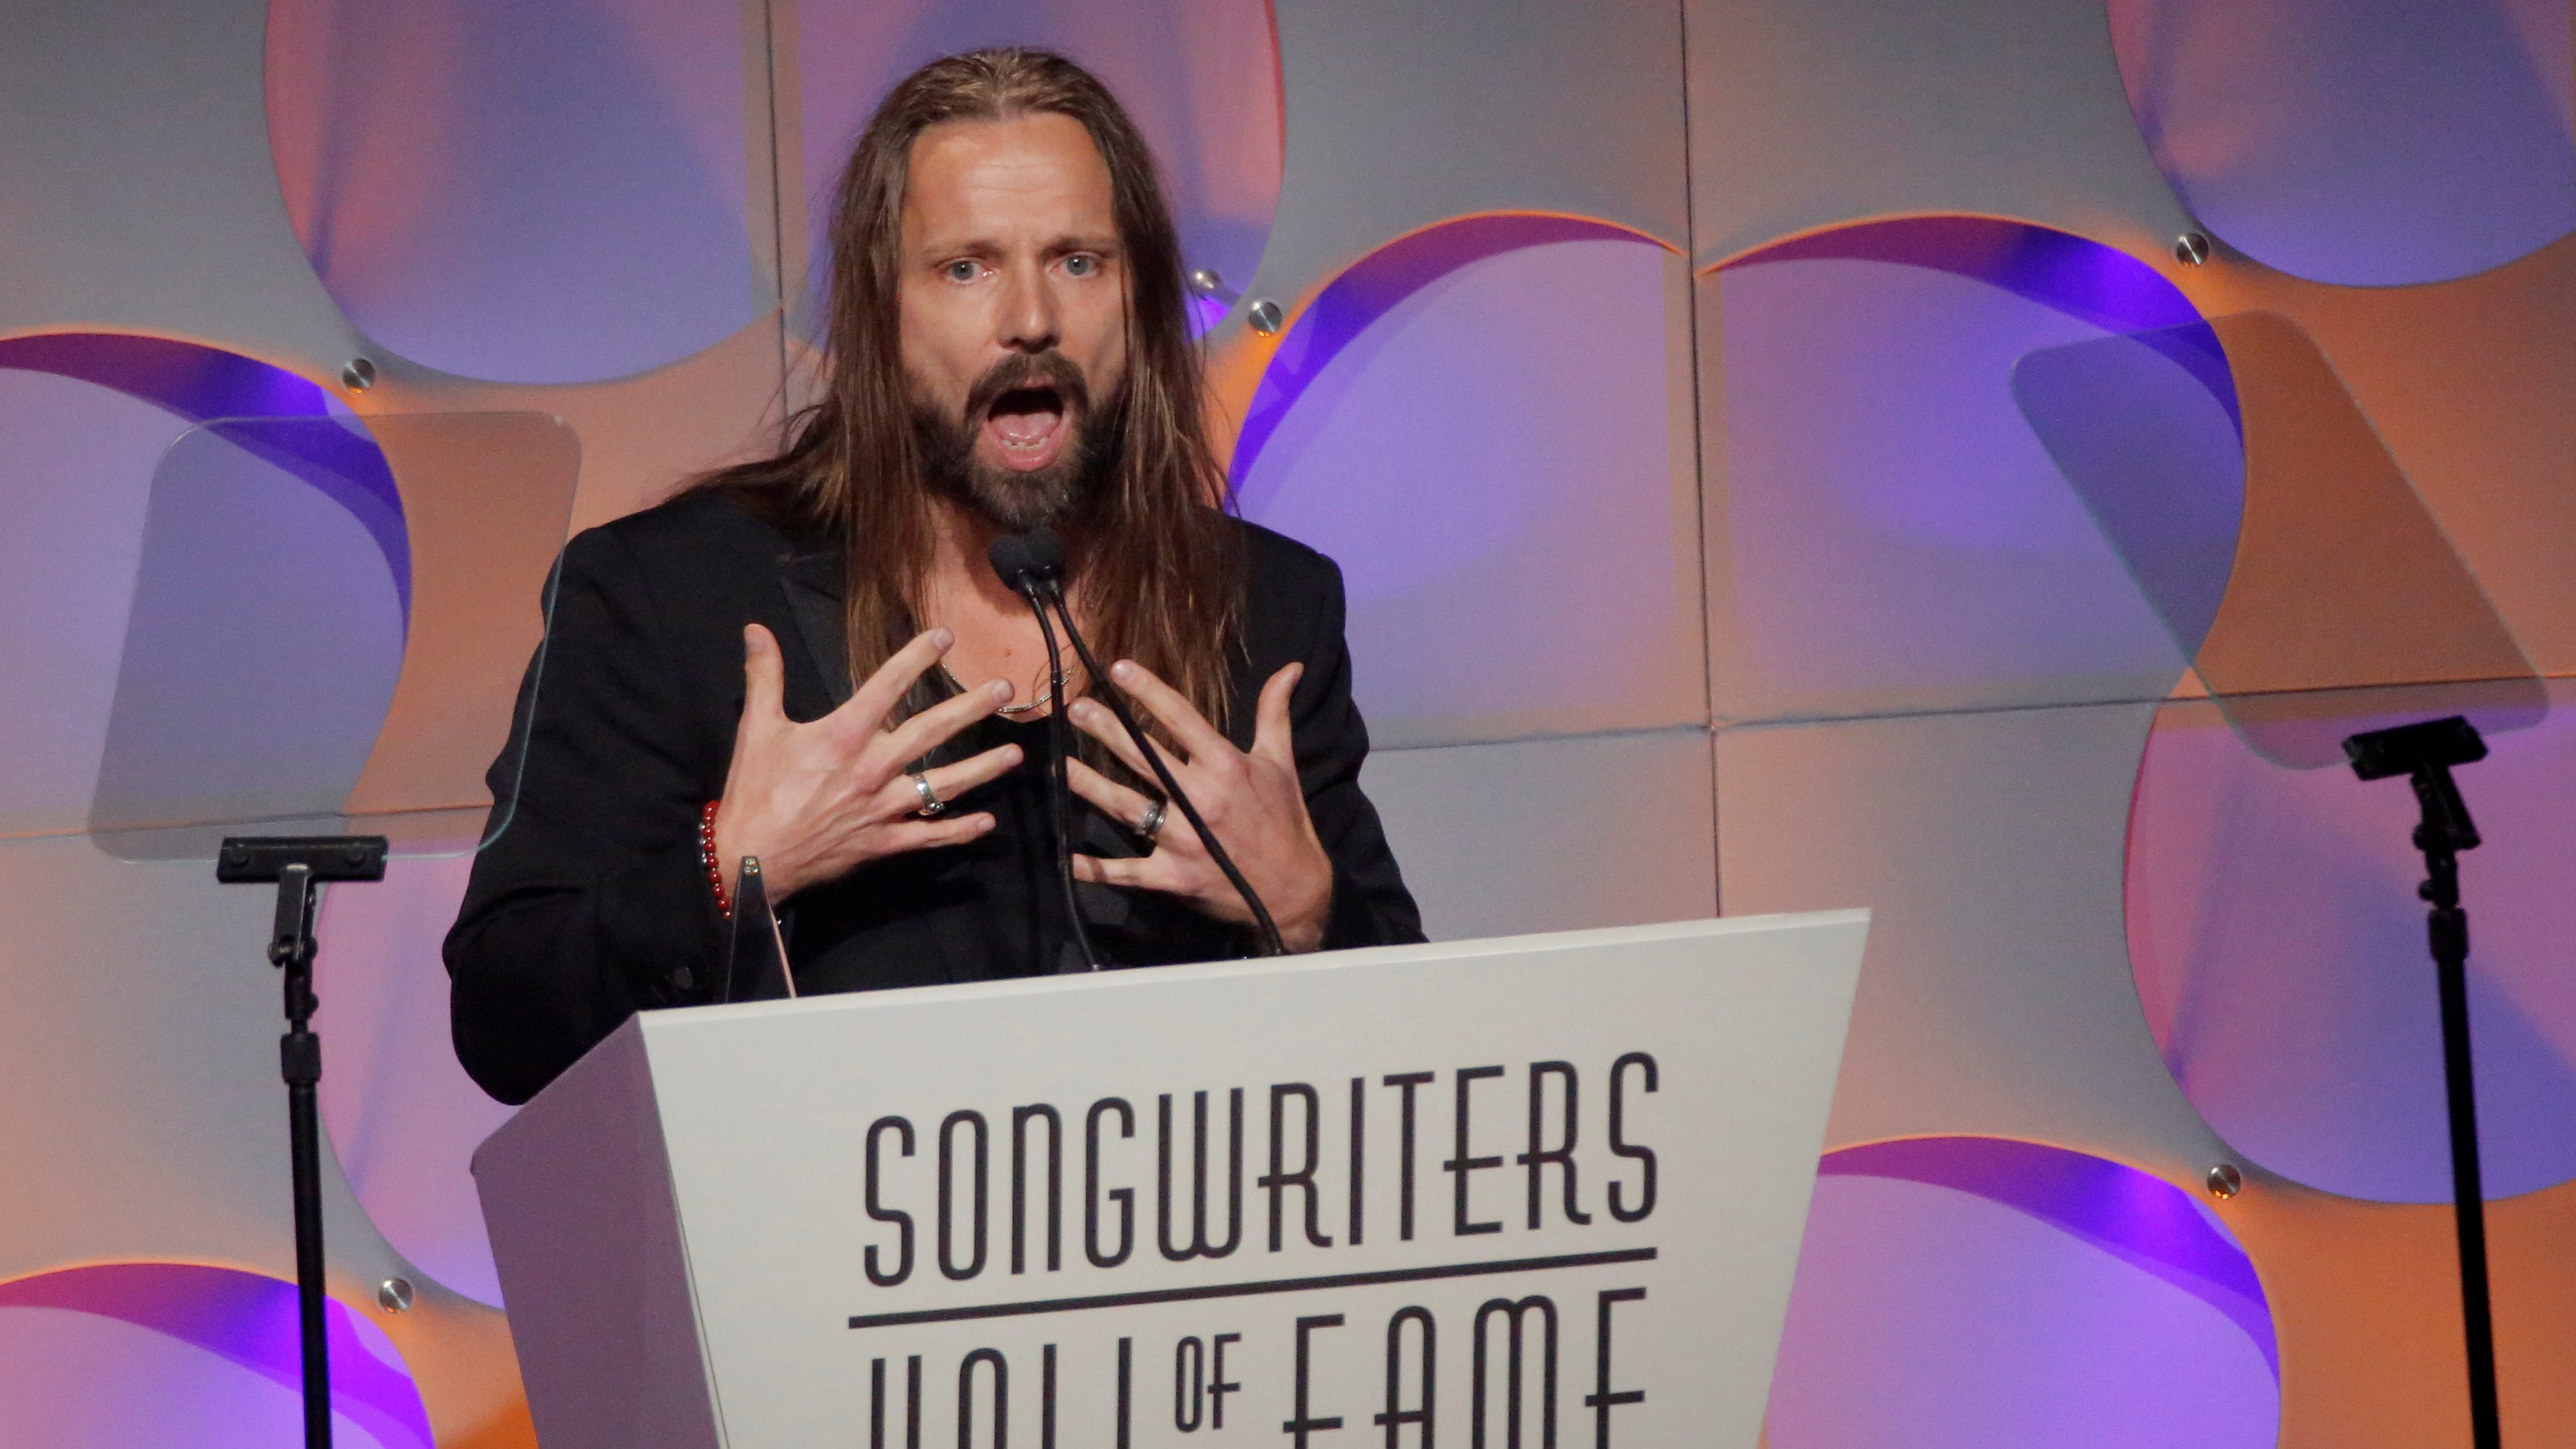 Max Martin being inducted in the songwriters Hall of Fame.